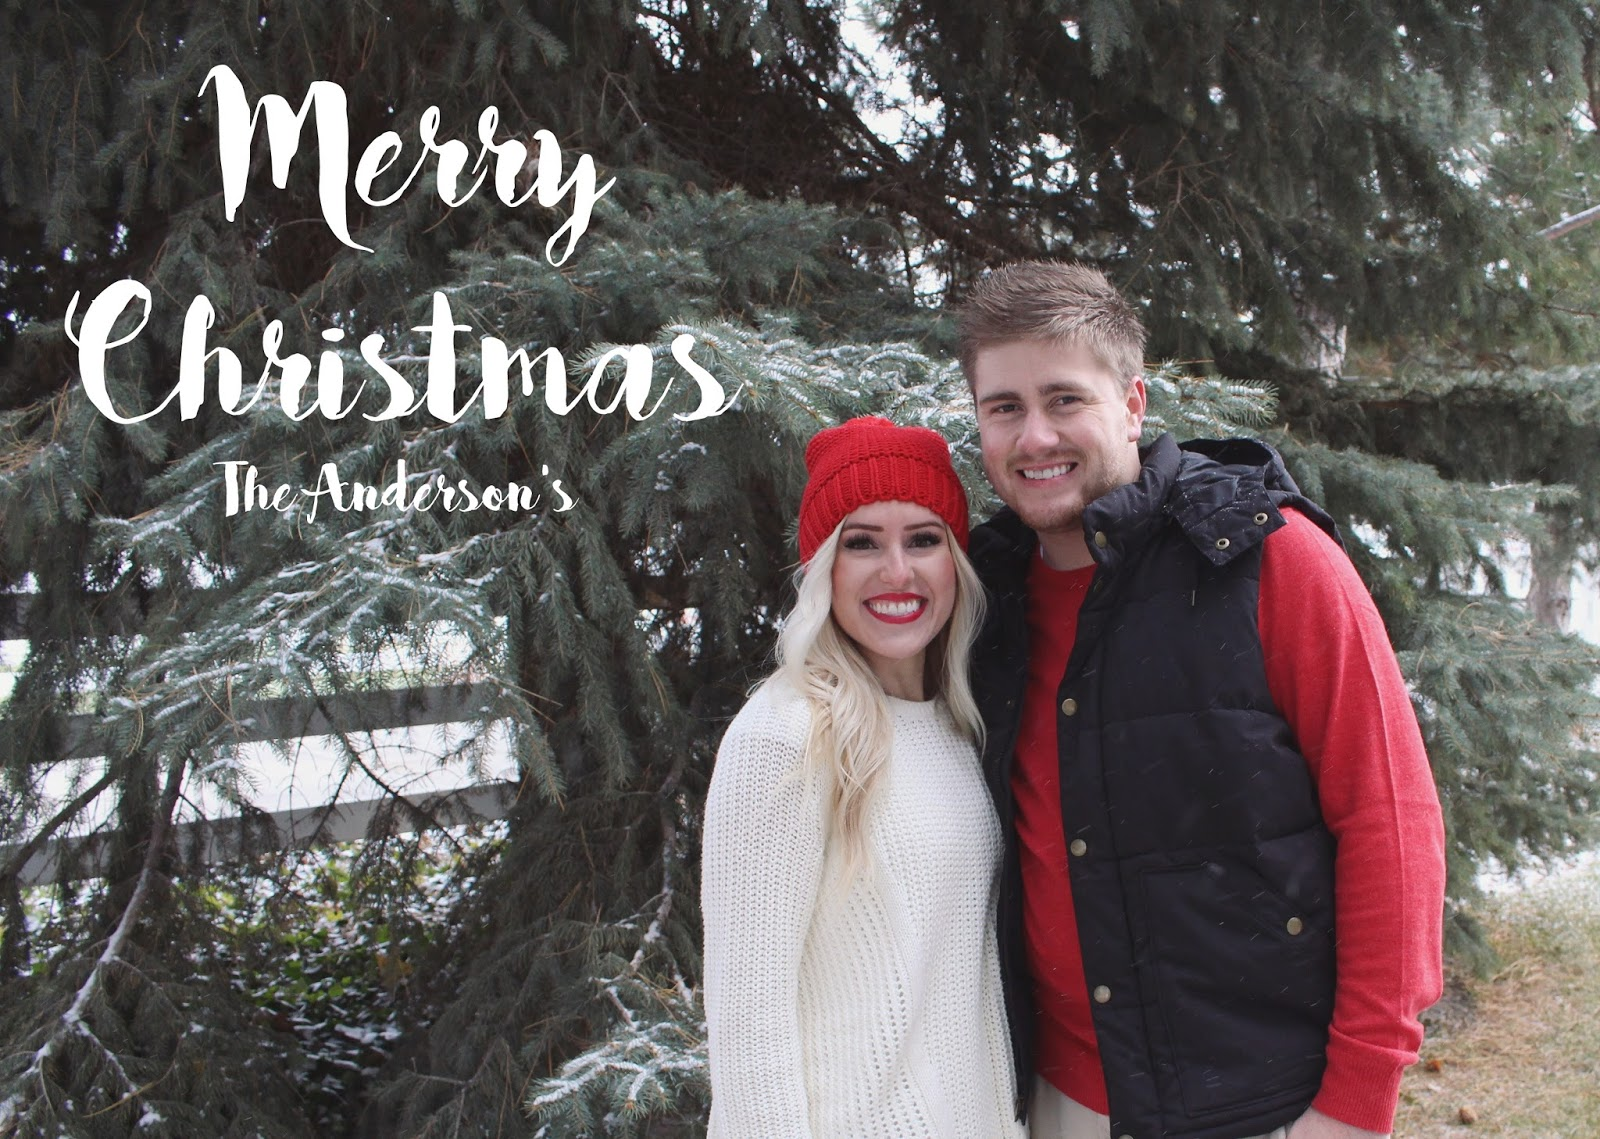 Merry Christmas from The Anderson's...